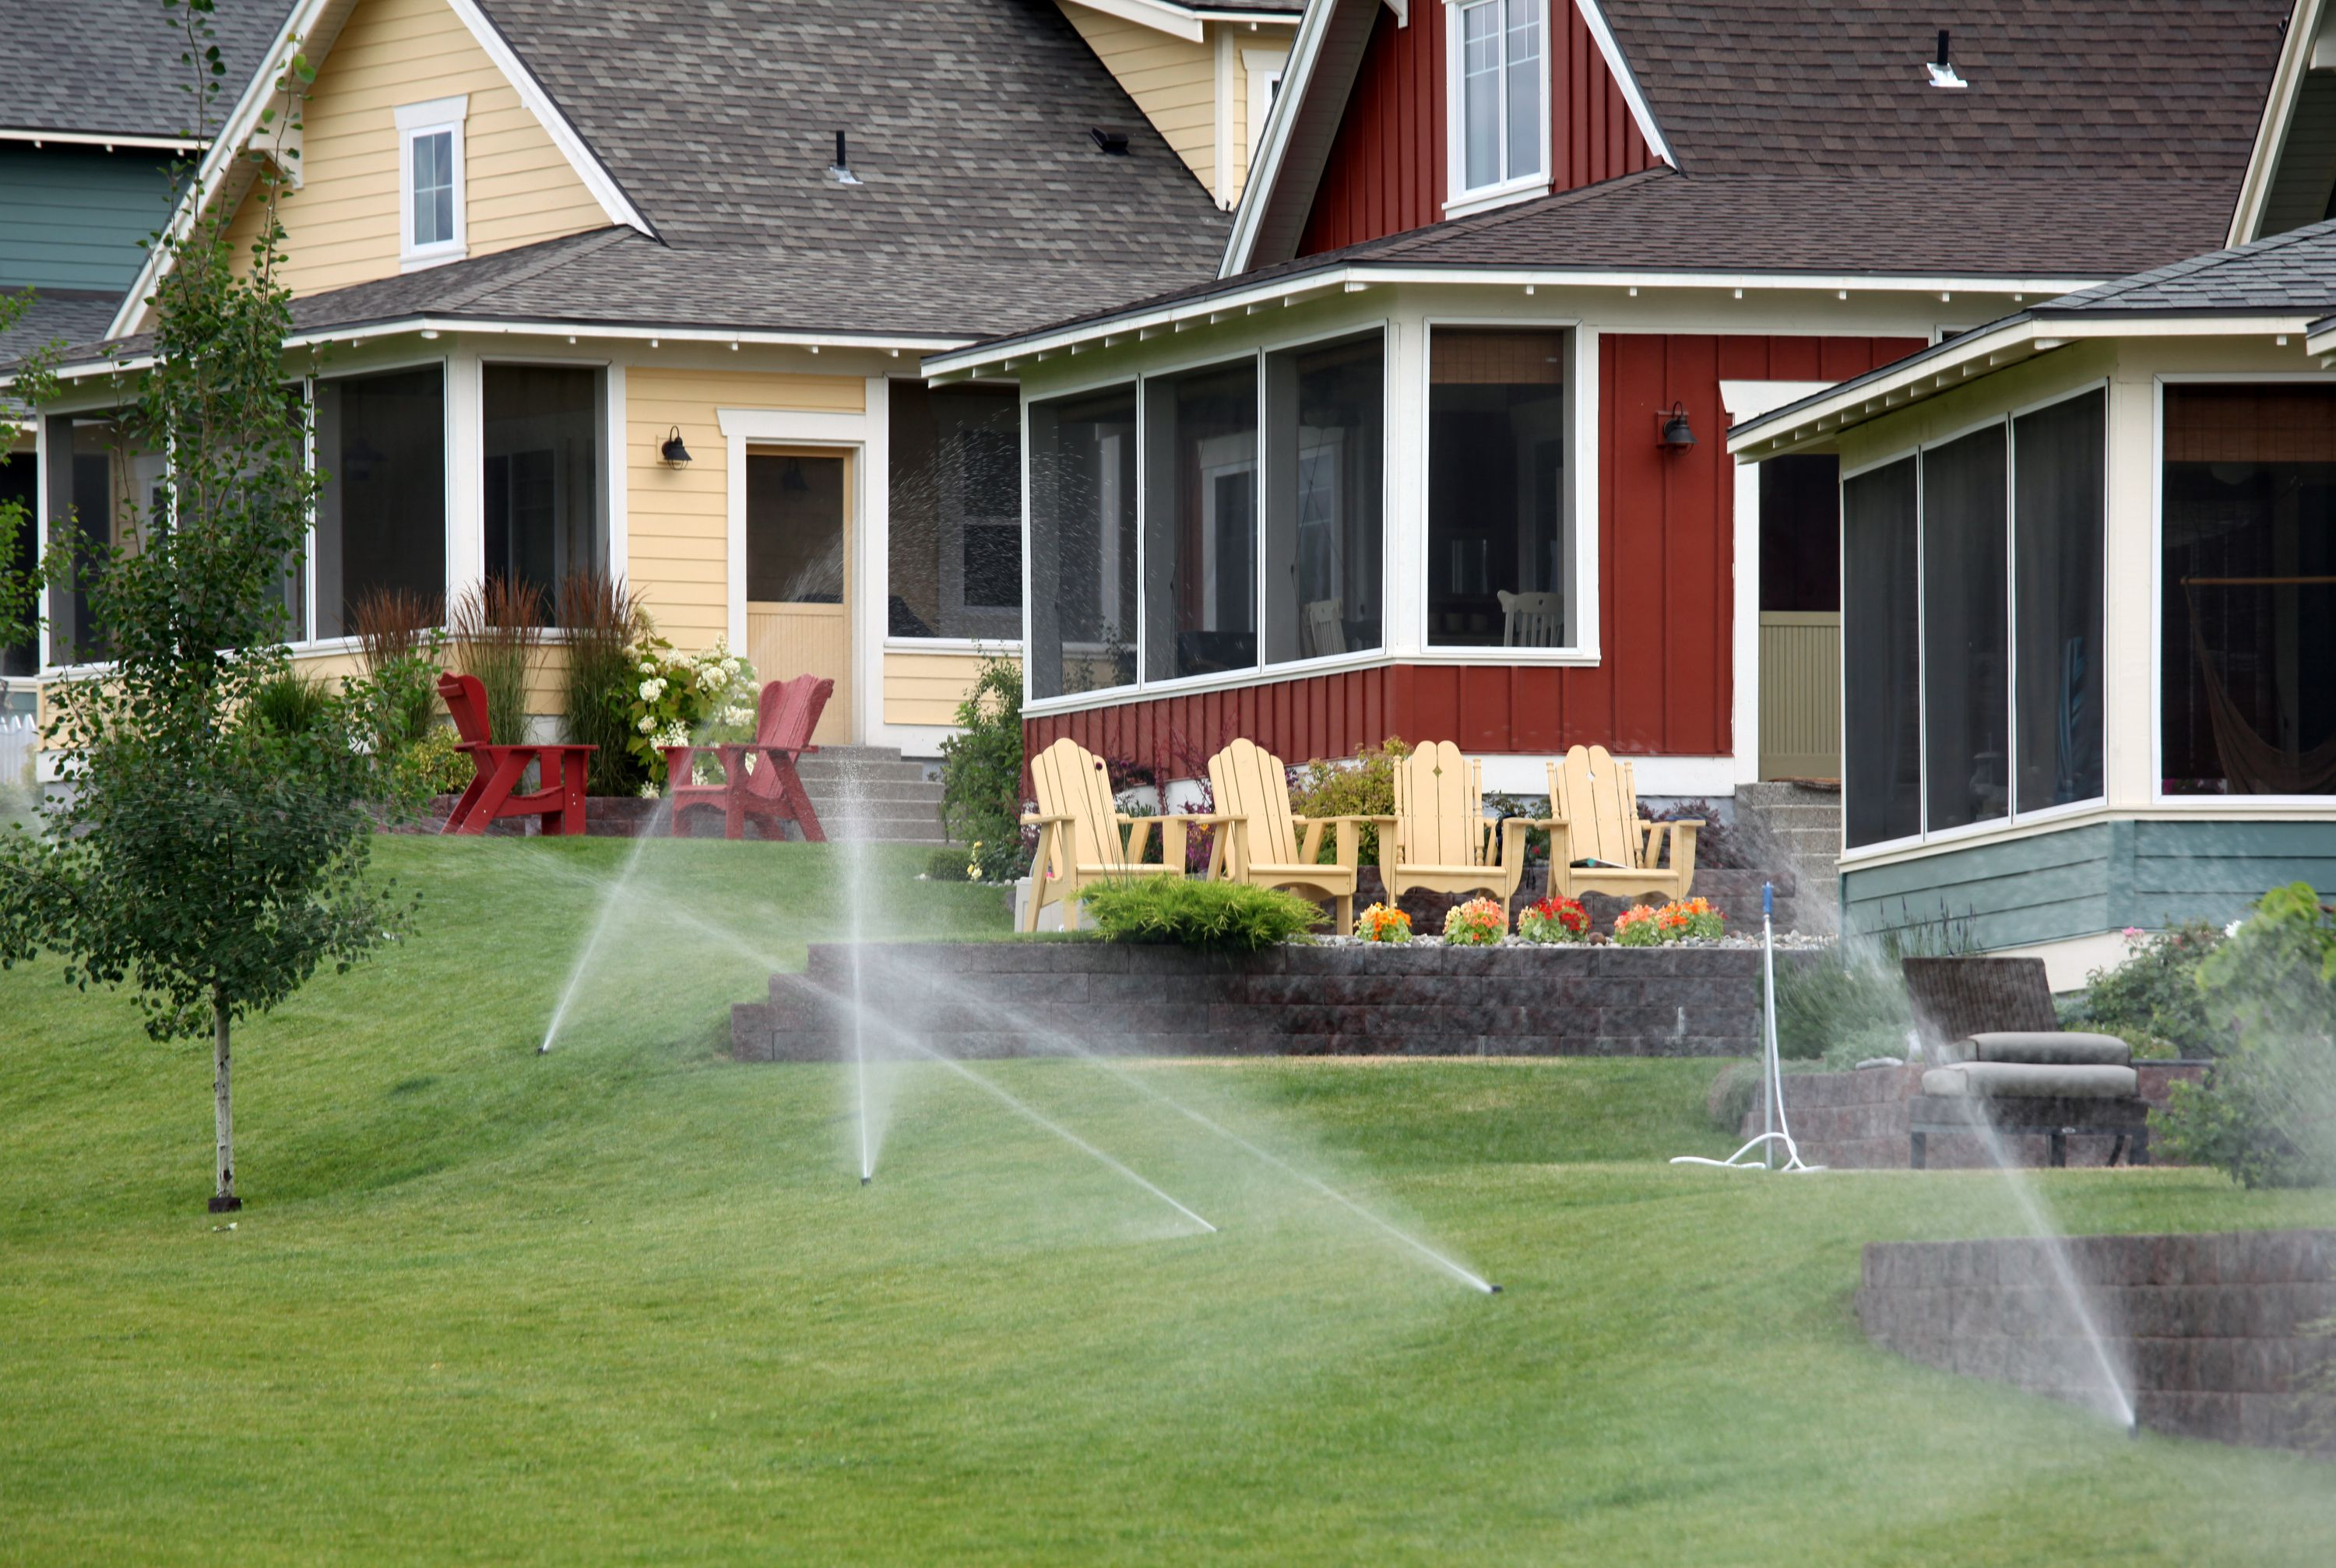 Replacing Or Rebuilding A Lawn Irrigation Sprinkler Valve Installation Manual Diy Howto